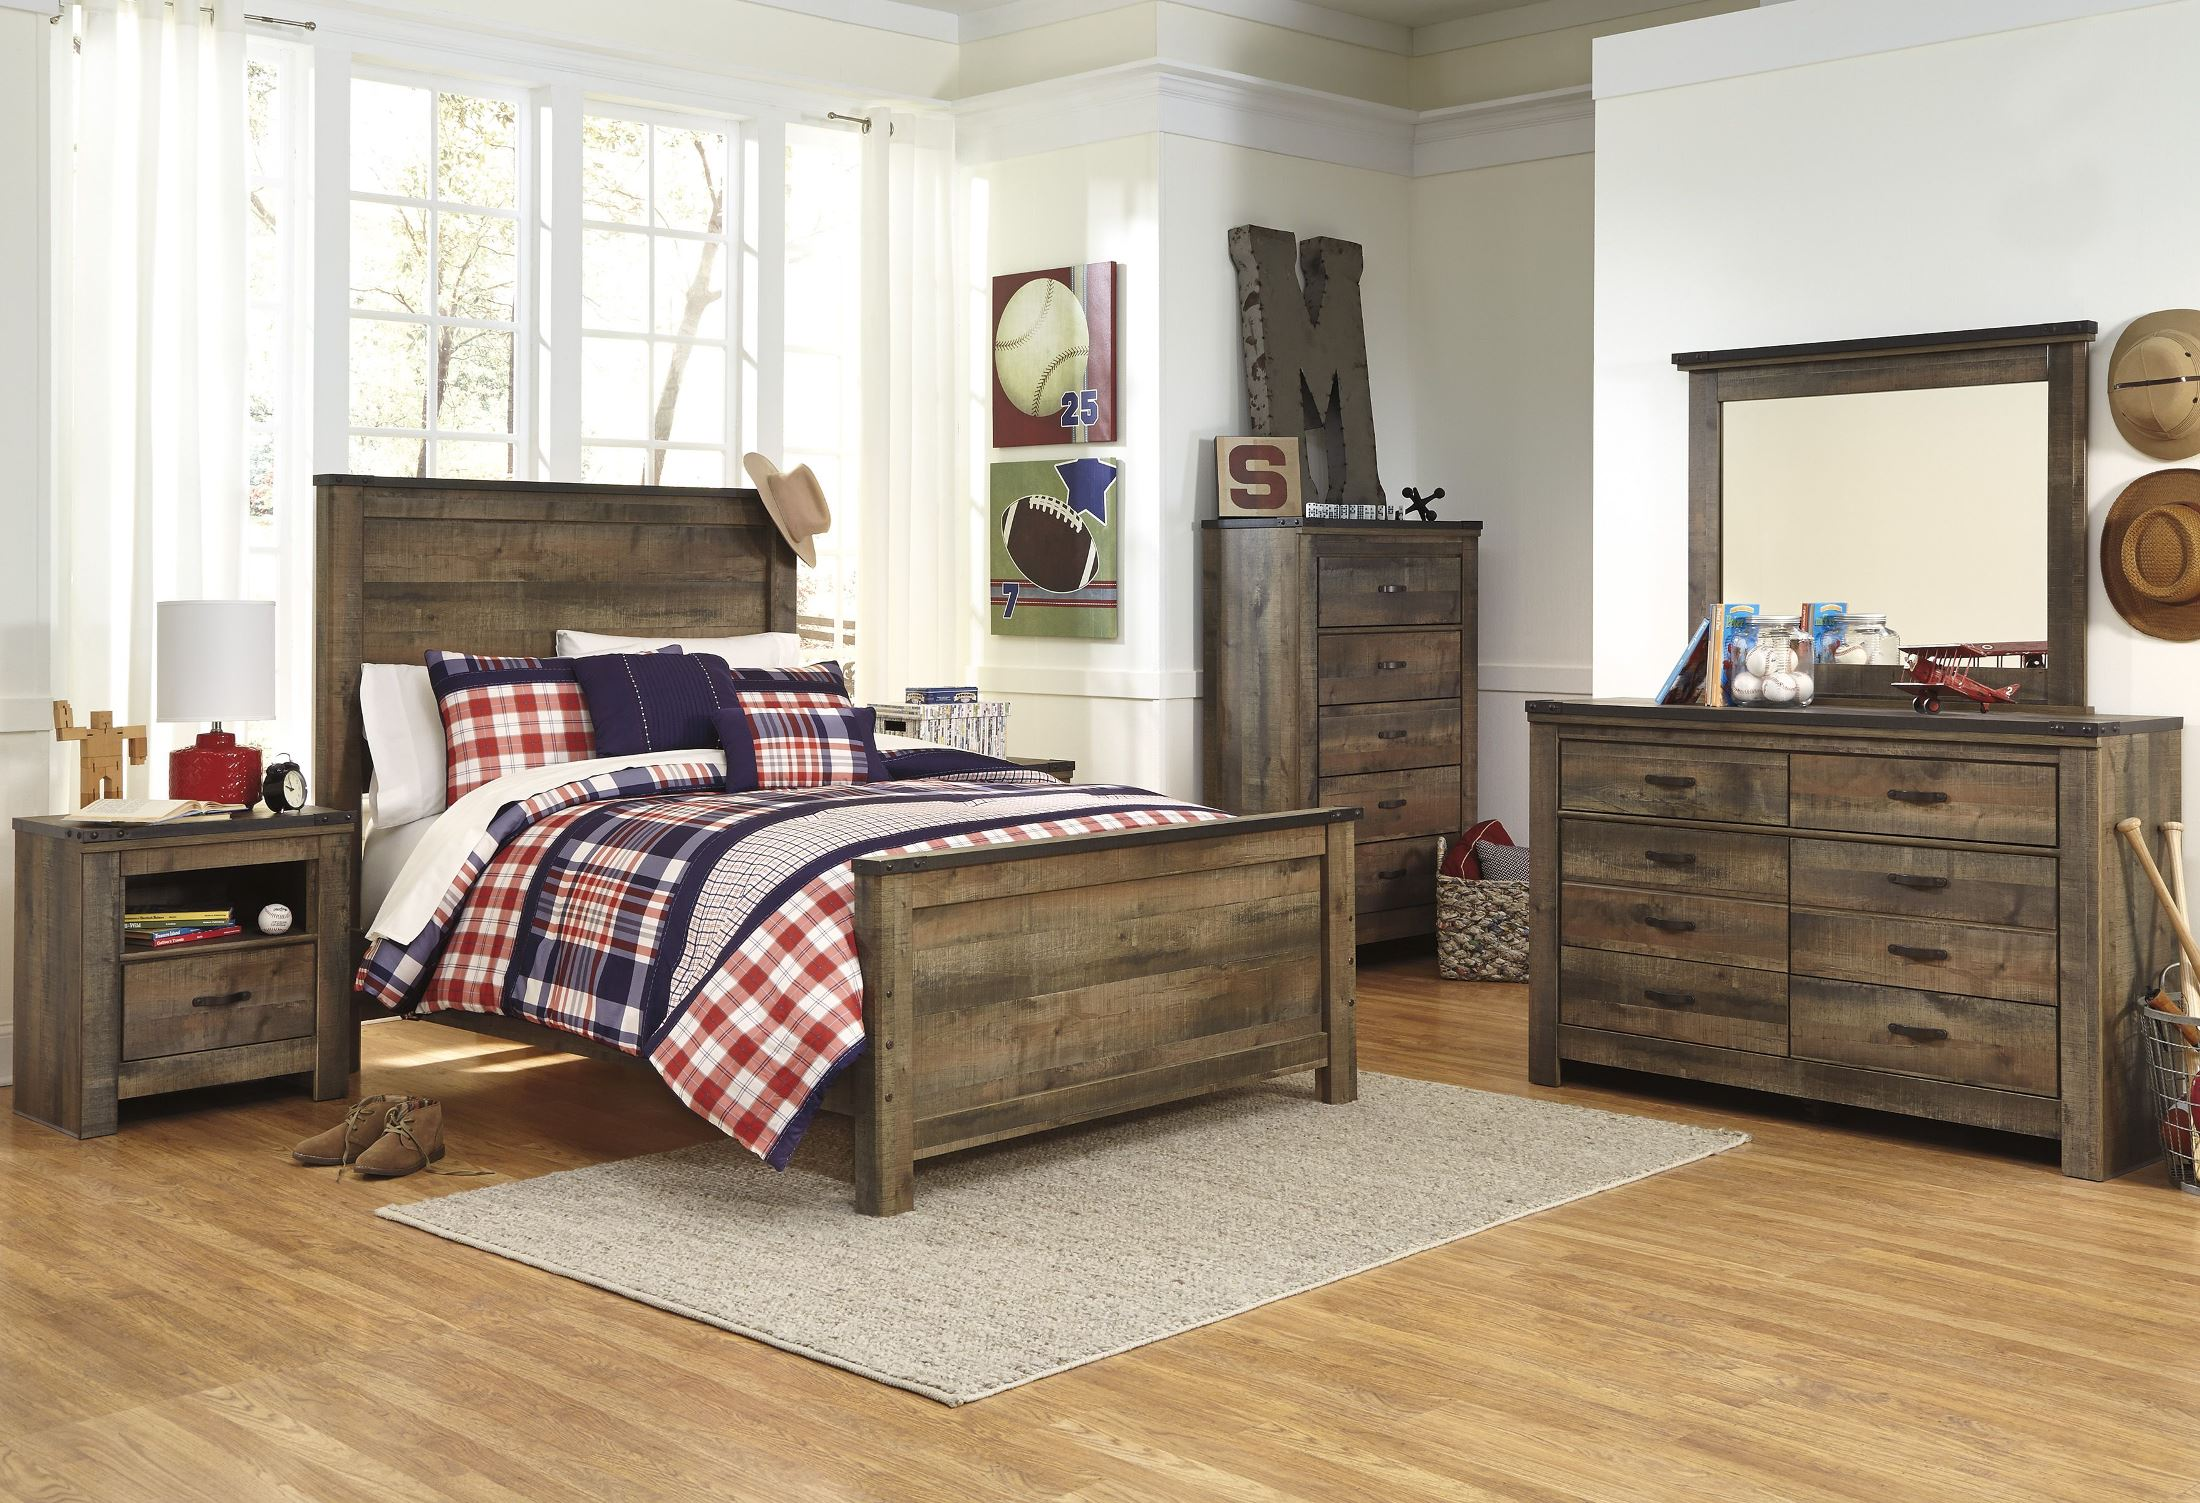 Signature design by ashley trinell brown panel bedroom set - Ashley bedroom furniture reviews ...